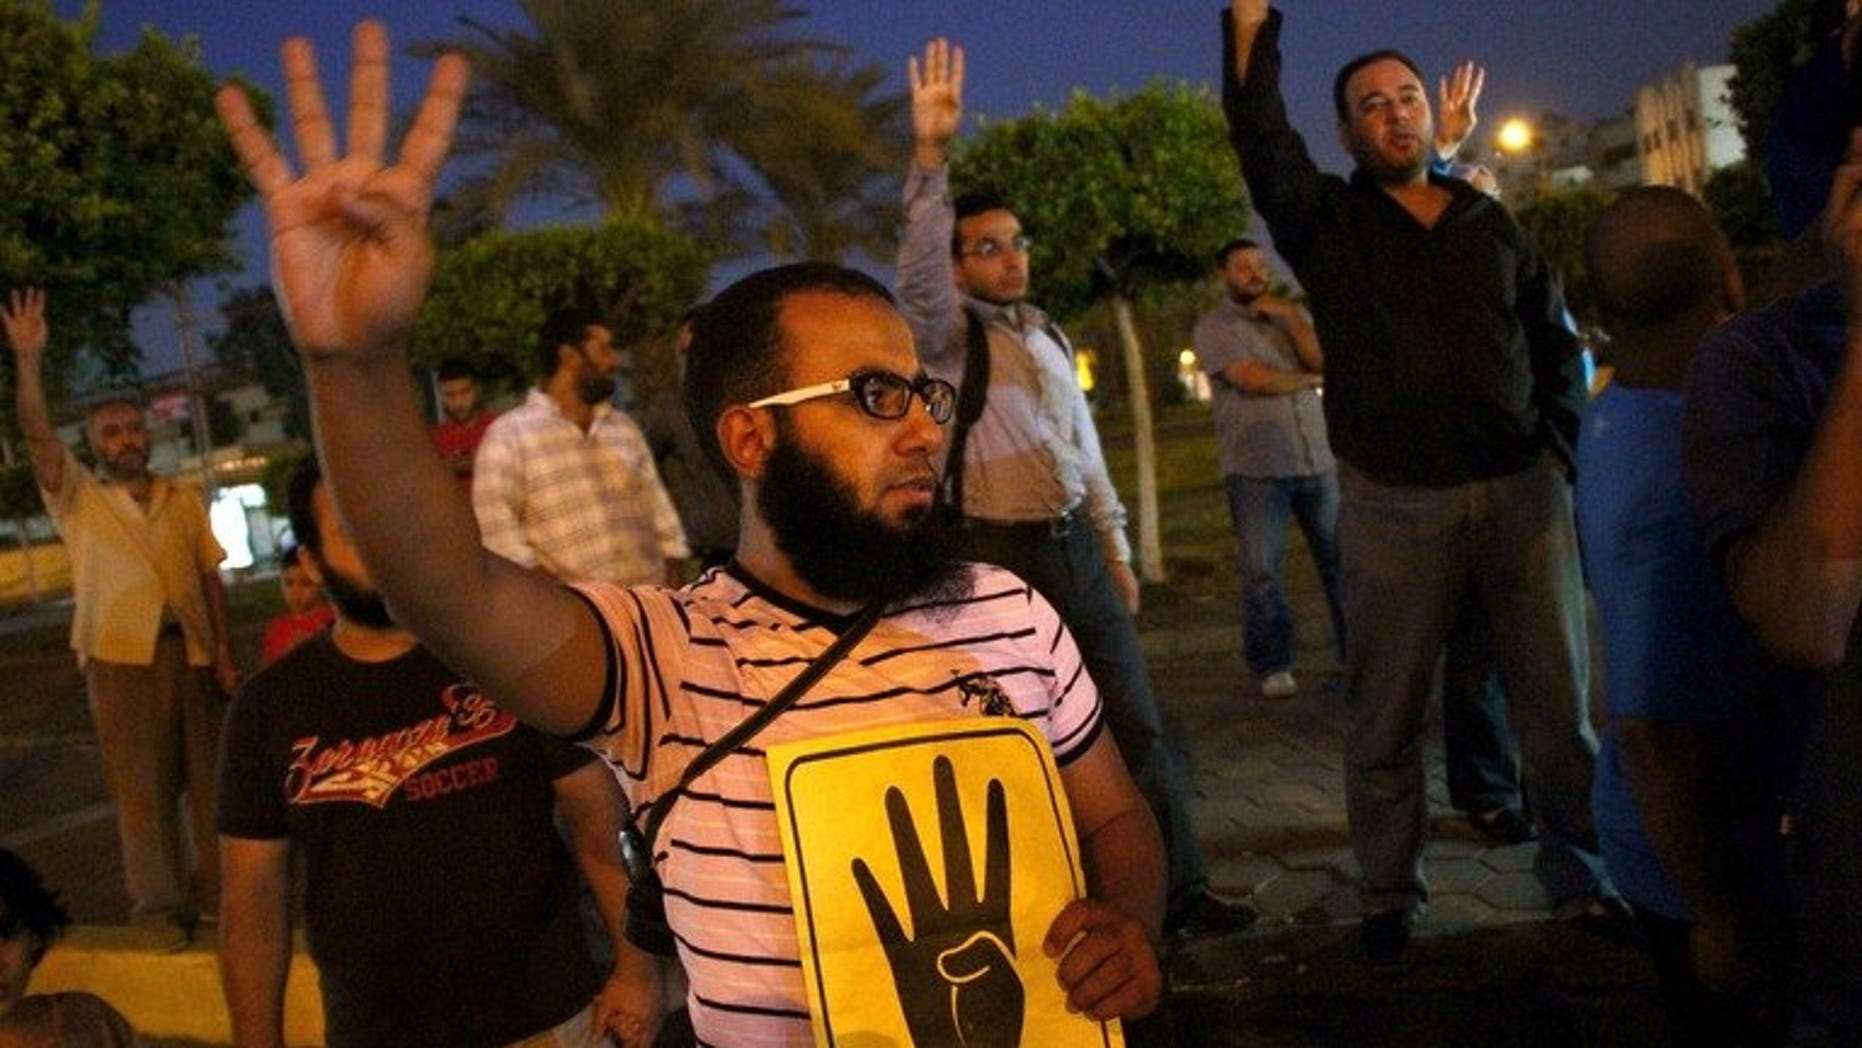 Hundreds of Muslim Brotherhood members demonstrate in Cairo on September 3, 2013. Egypt is expected to announce soon whether or not to dissolve an NGO linked to the Muslim Brotherhood amid allegations it operates as a front for the Islamist group.